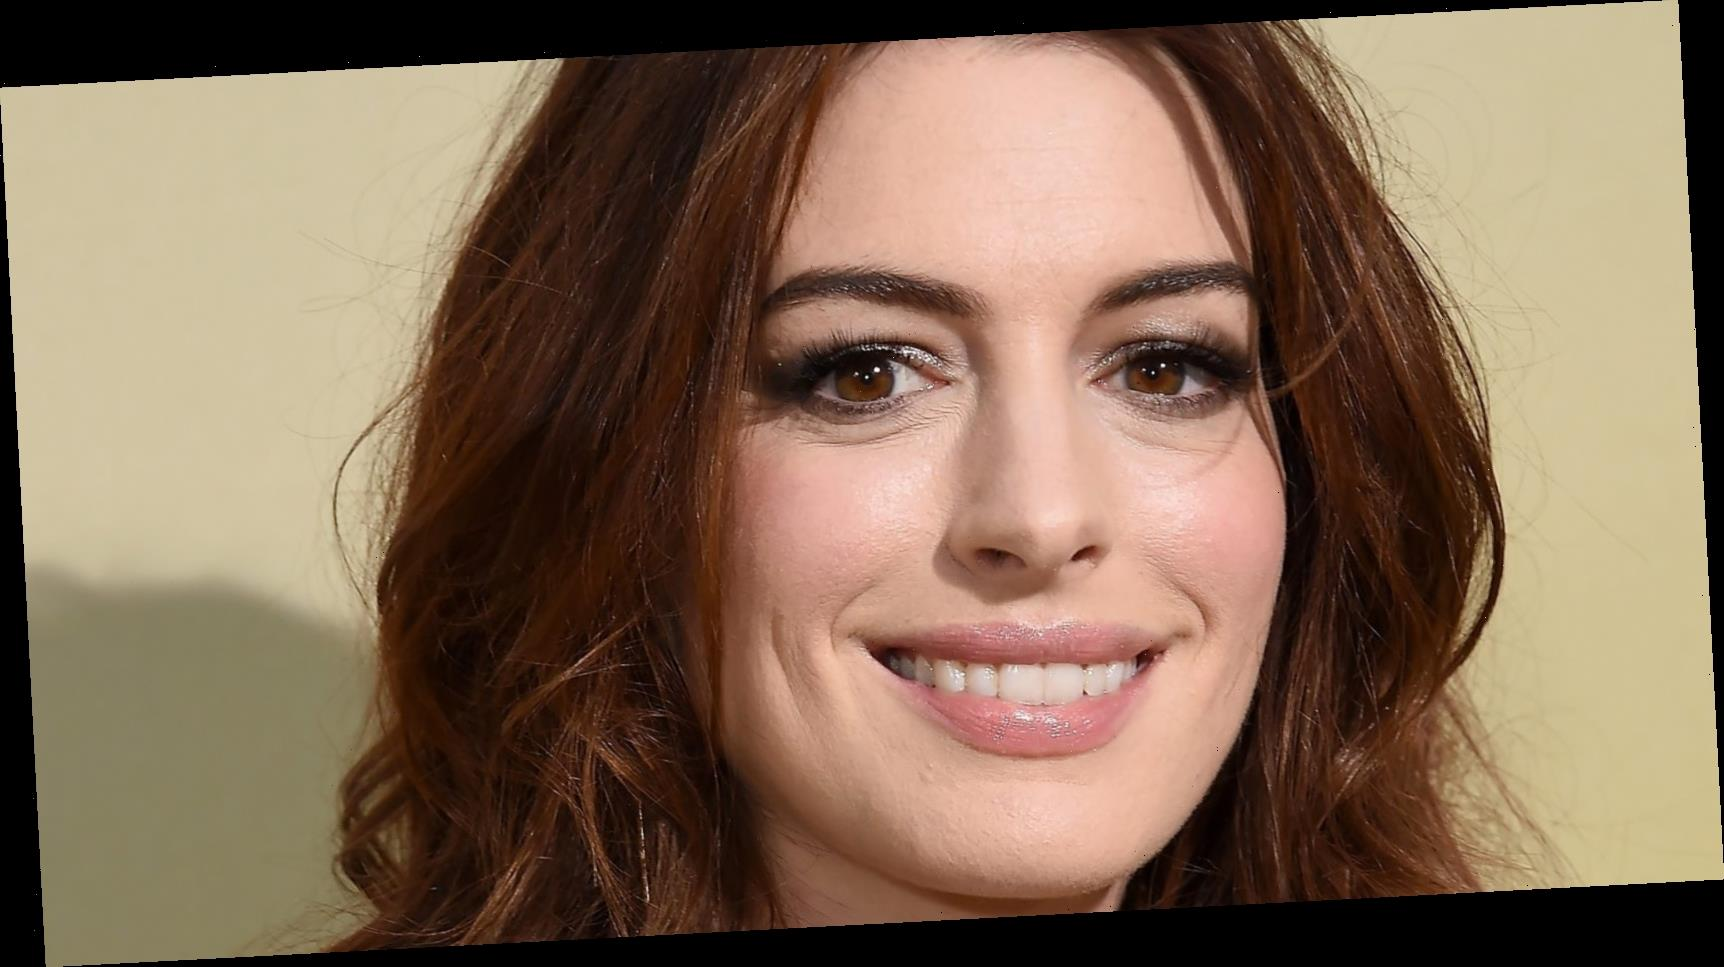 This addictive podcast is getting the TV treatment – and it will star Anne Hathaway